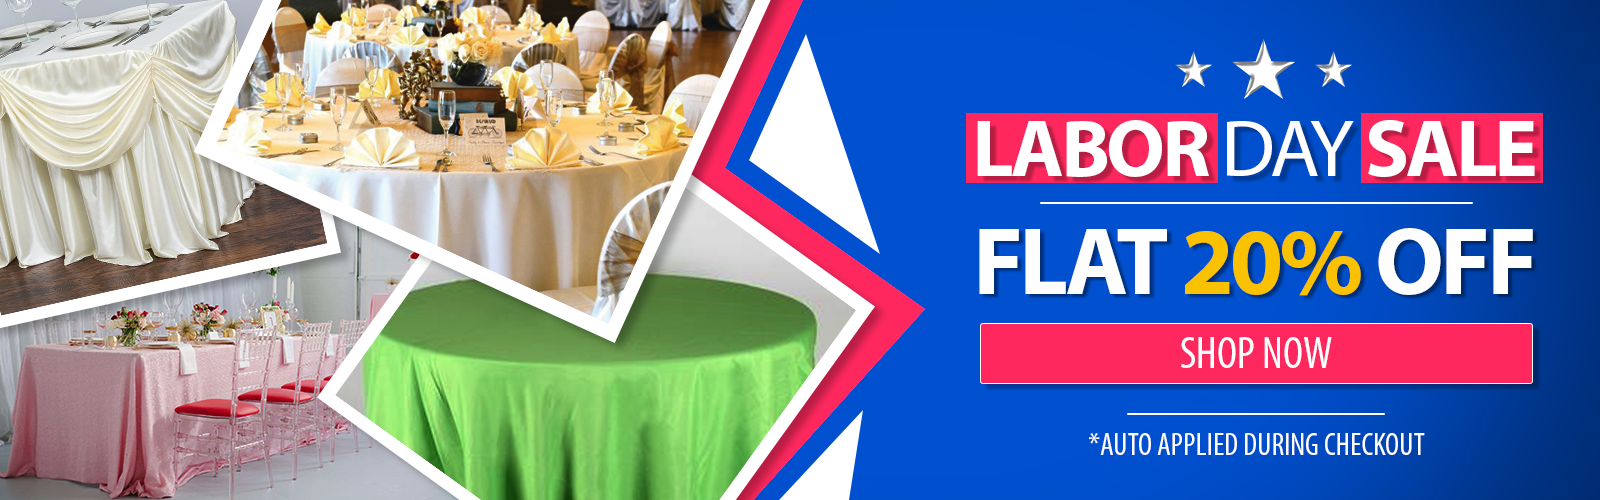 Wedding Table Linens.Wholesale Wedding Table Linens Tablecloths And Chair Covers Your